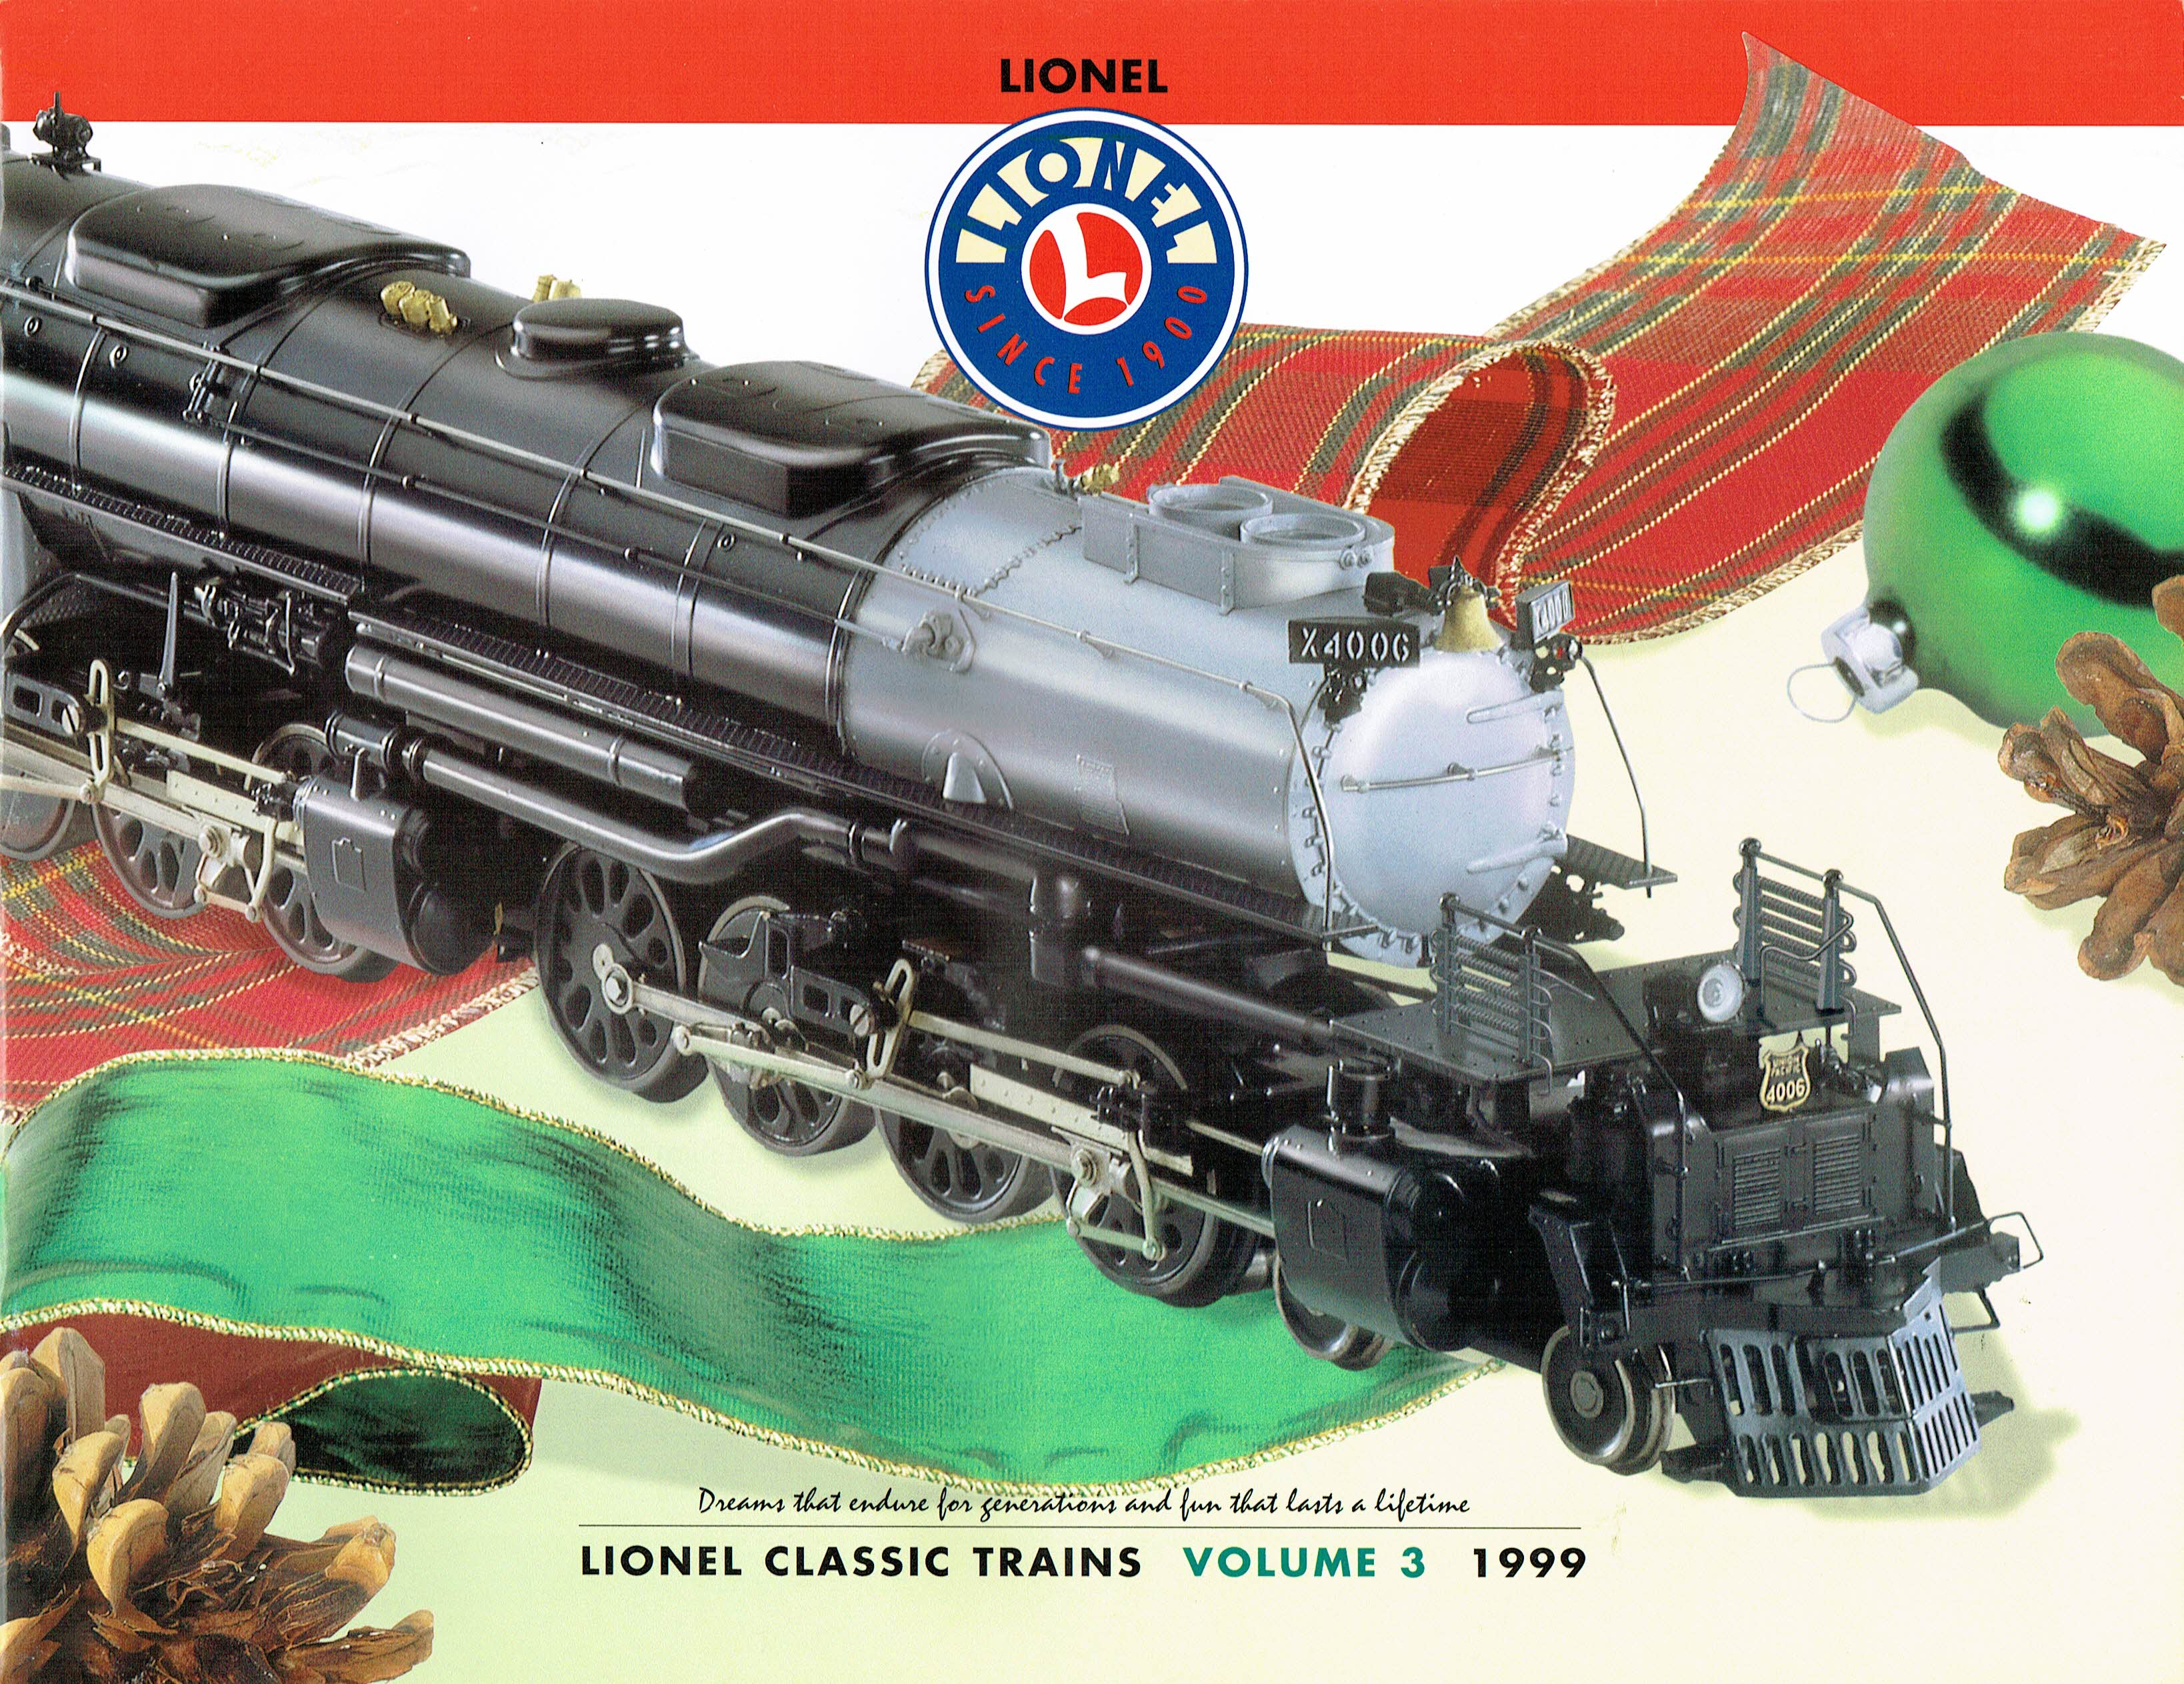 Lionel 1999 Classic Trains Volume 3 Catalog image